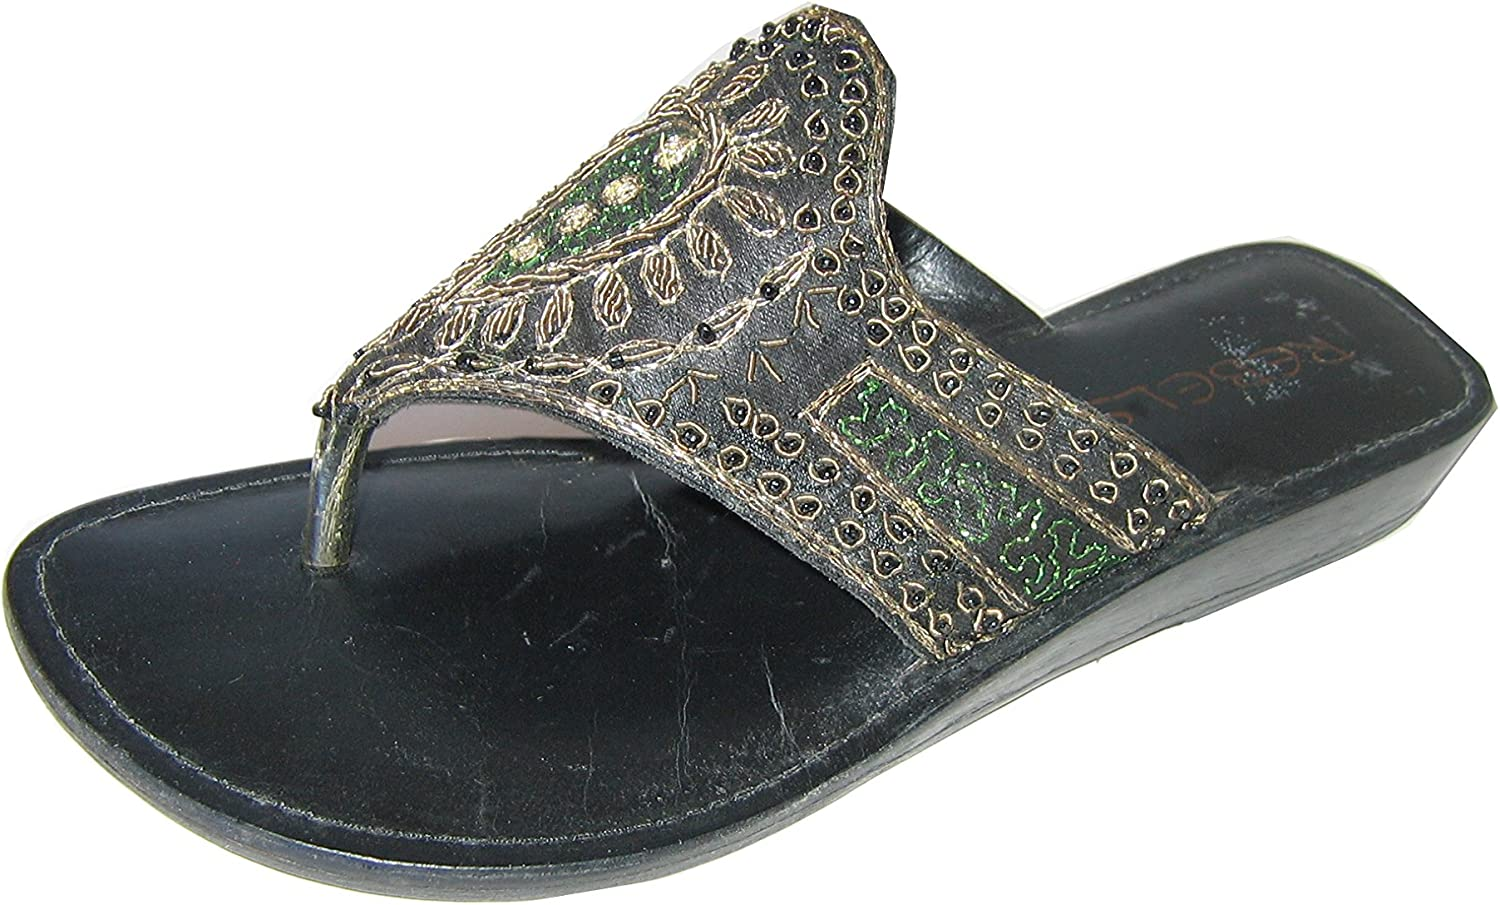 Rebel Wedge Sandal Mule Satine Leather with Sequence & gold Embroidered bluee, Black